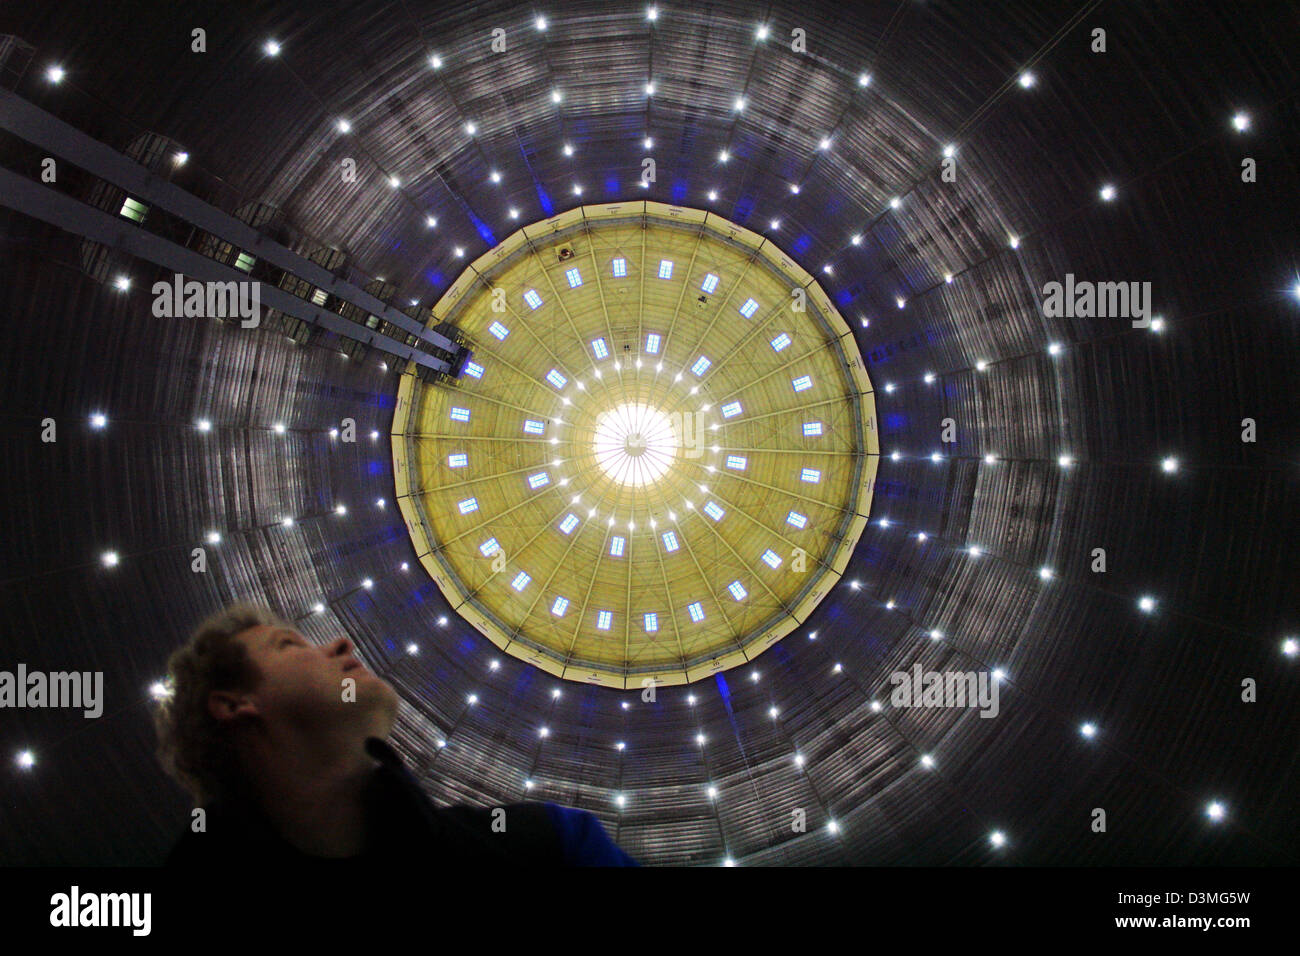 The picture shows the audiovisual installation 'Fire Light Sky' by artist Christina Kubisch at the gasometer - Stock Image